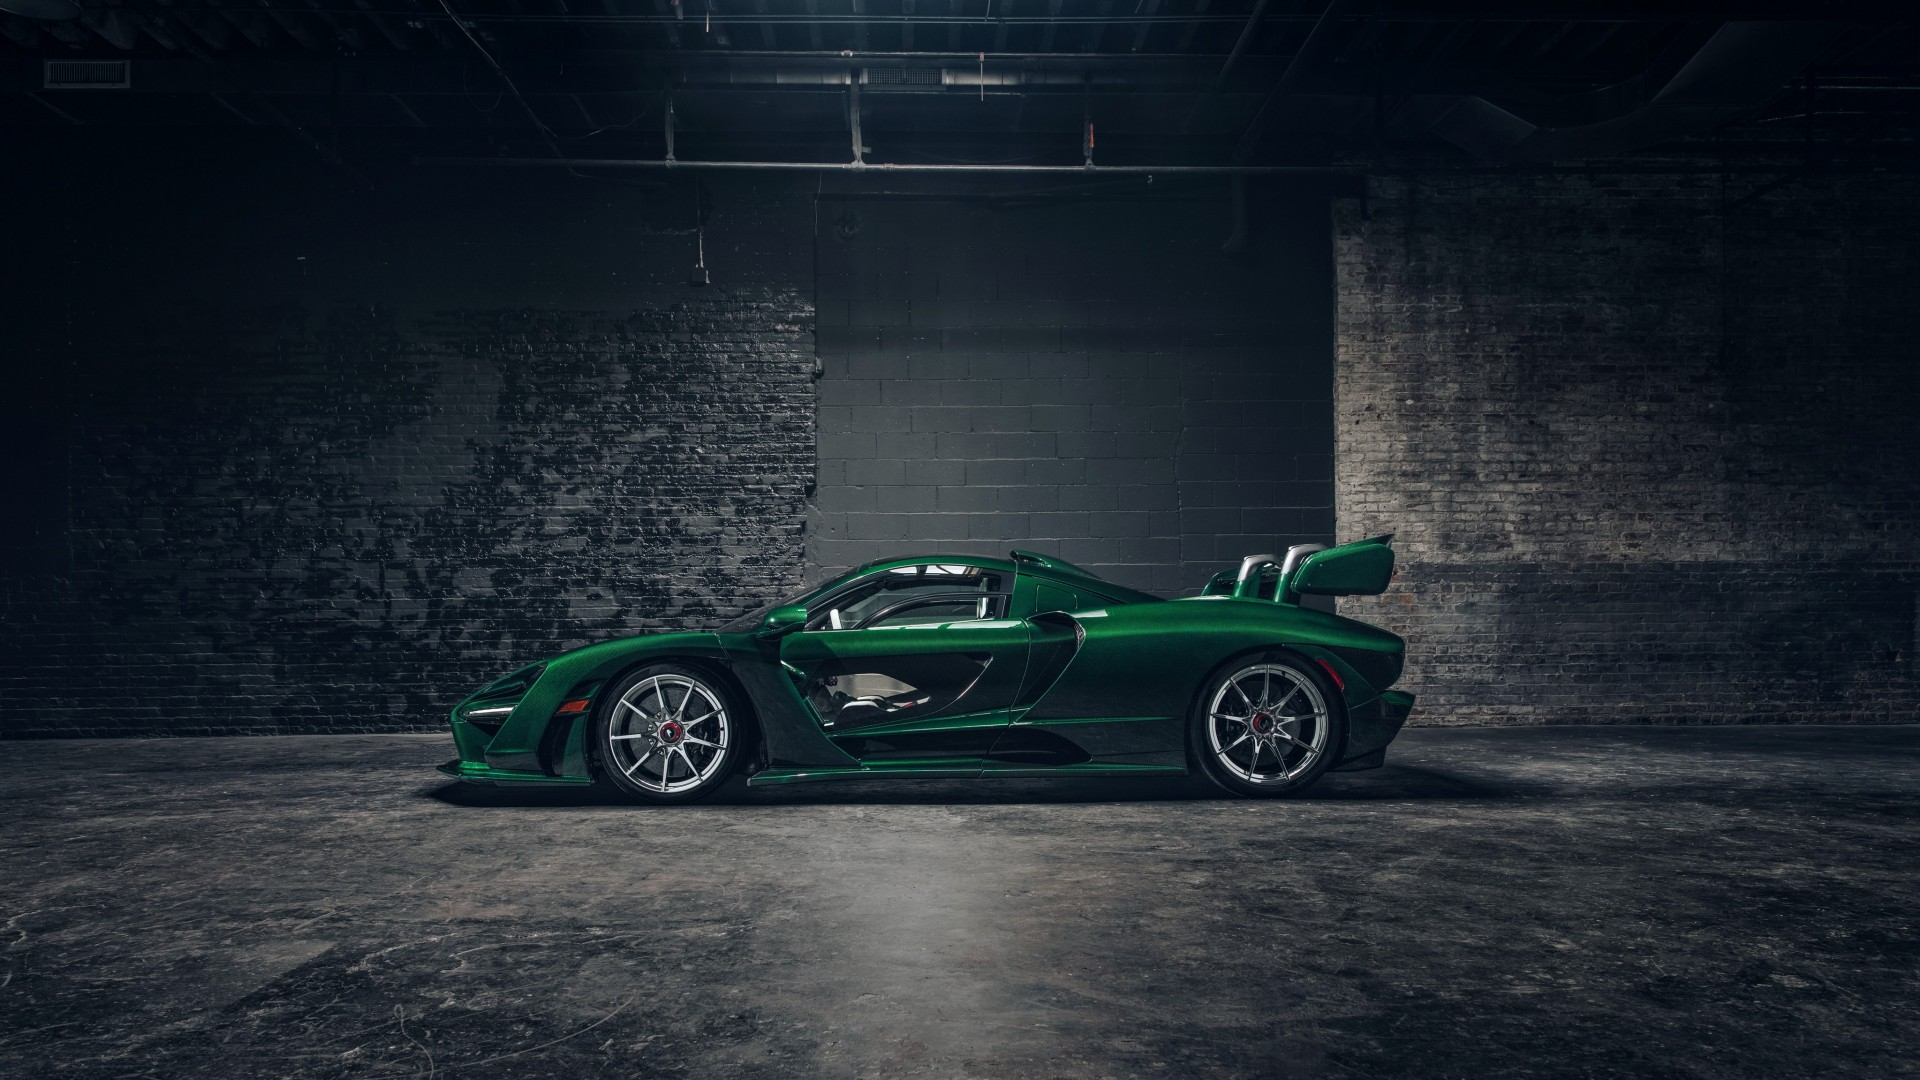 Wallpaper Mclaren Senna Gtr Green Carbon Supercar 2018